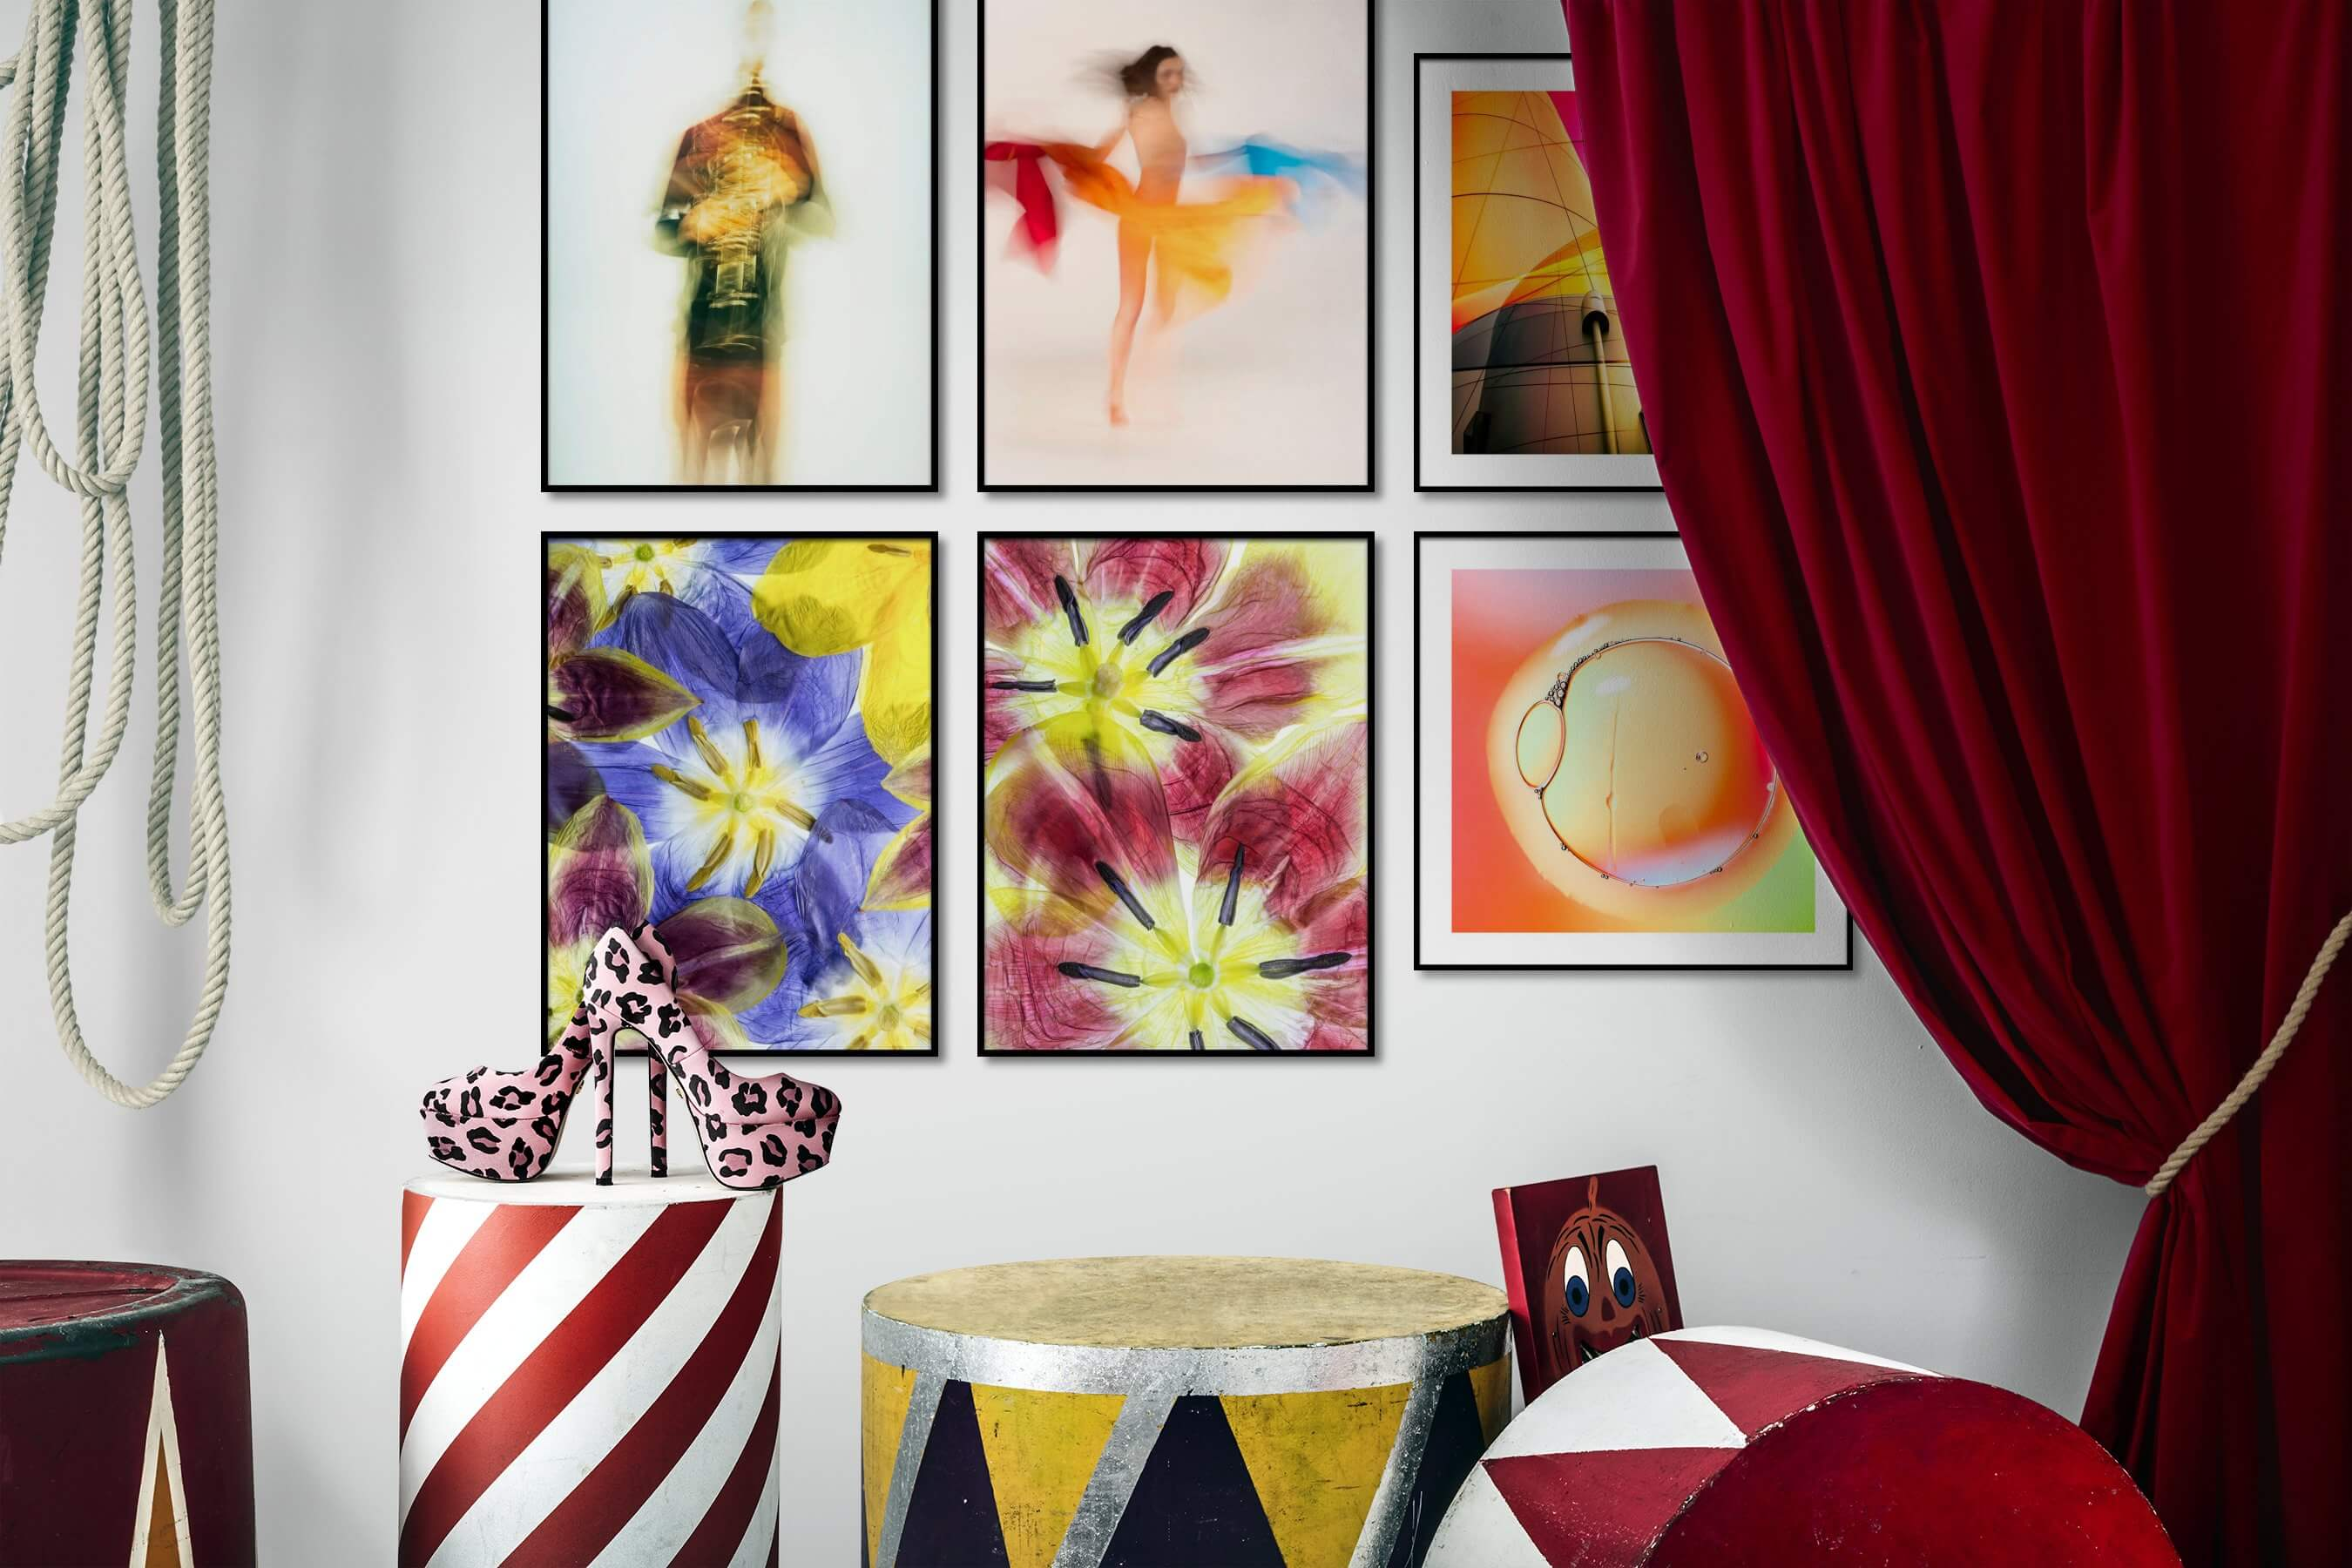 Gallery wall idea with six framed pictures arranged on a wall depicting For the Minimalist, Fashion & Beauty, Colorful, For the Moderate, Flowers & Plants, For the Maximalist, and City Life